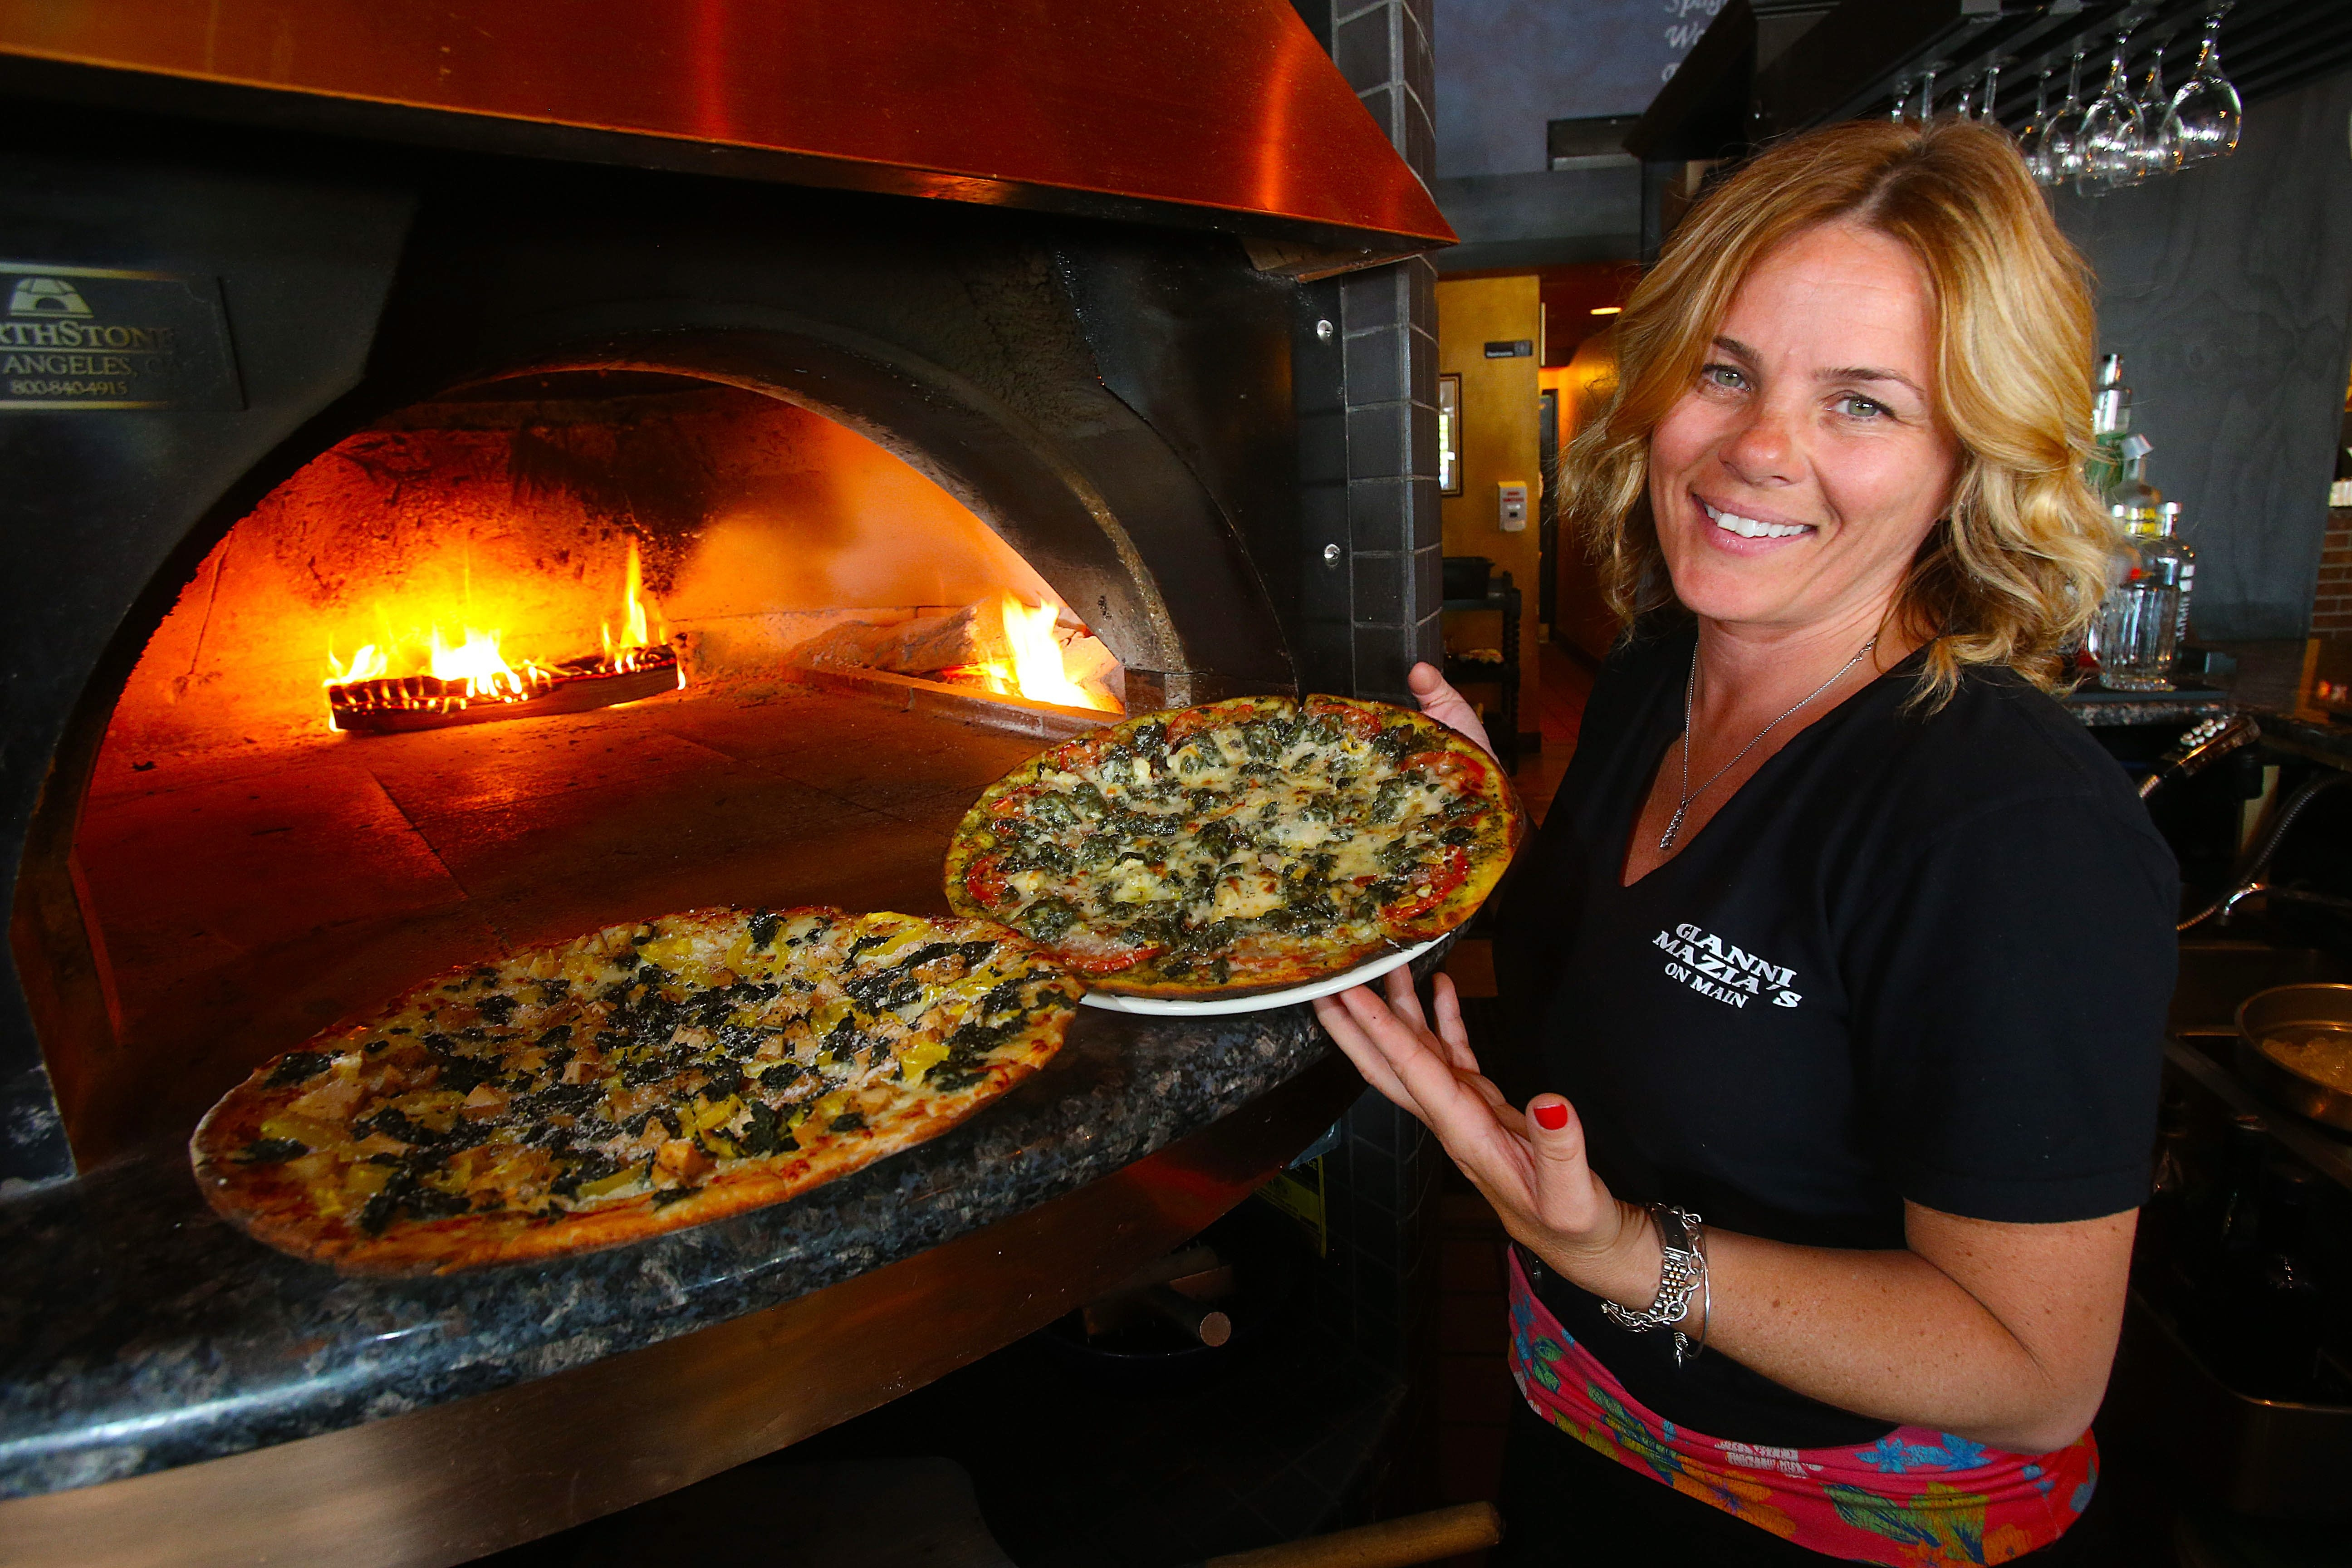 Owner Paula Cambria shows off the Desperate Housewife and the Pesto Provolone wood-fired pizzas.